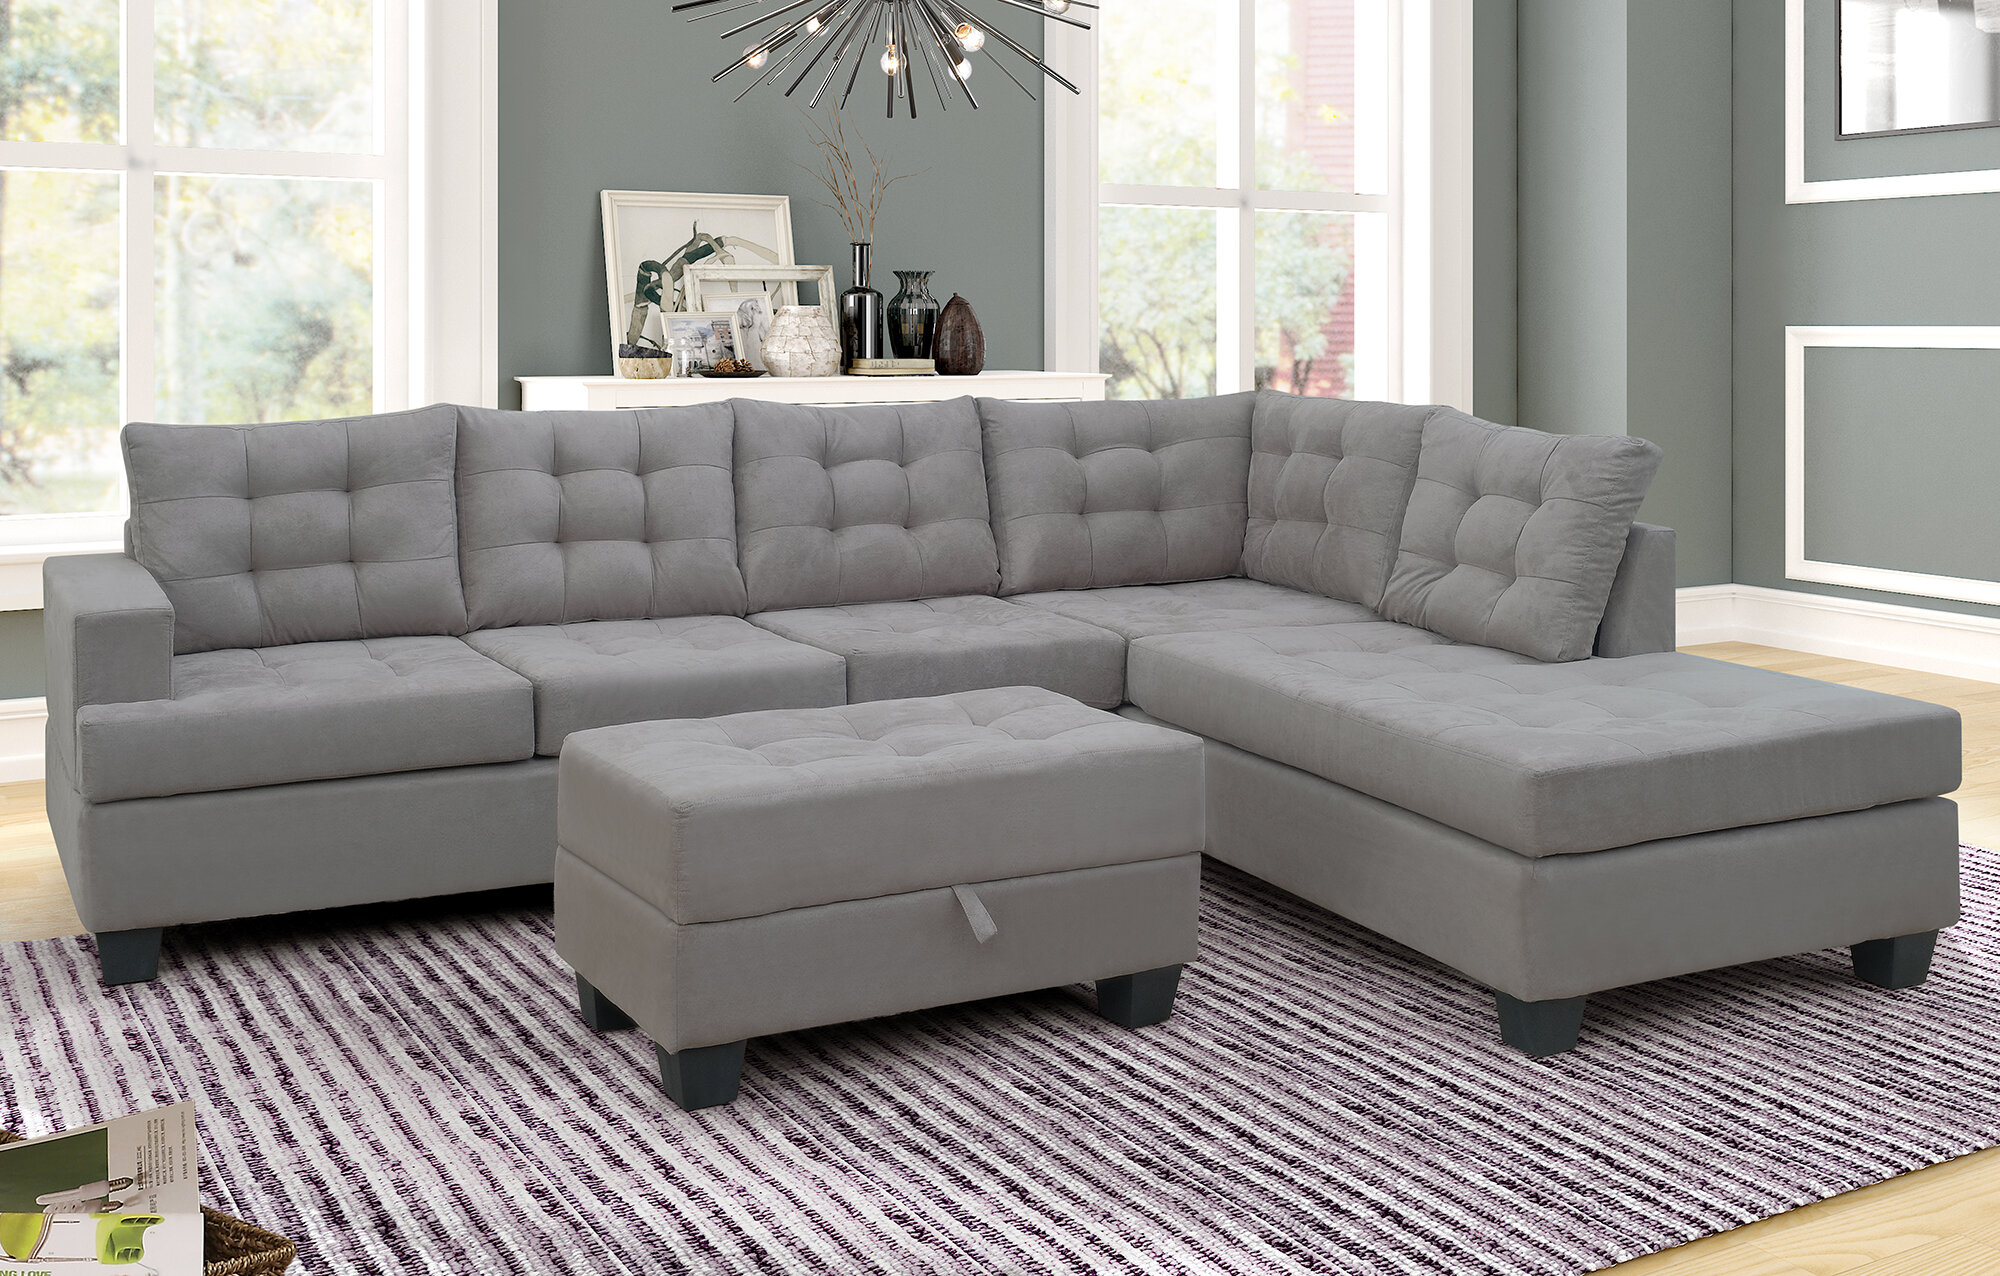 latitude run sofa 3 piece sectional sofa with chaise lounge and storage ottoman l shape couch living room furnituregrey c